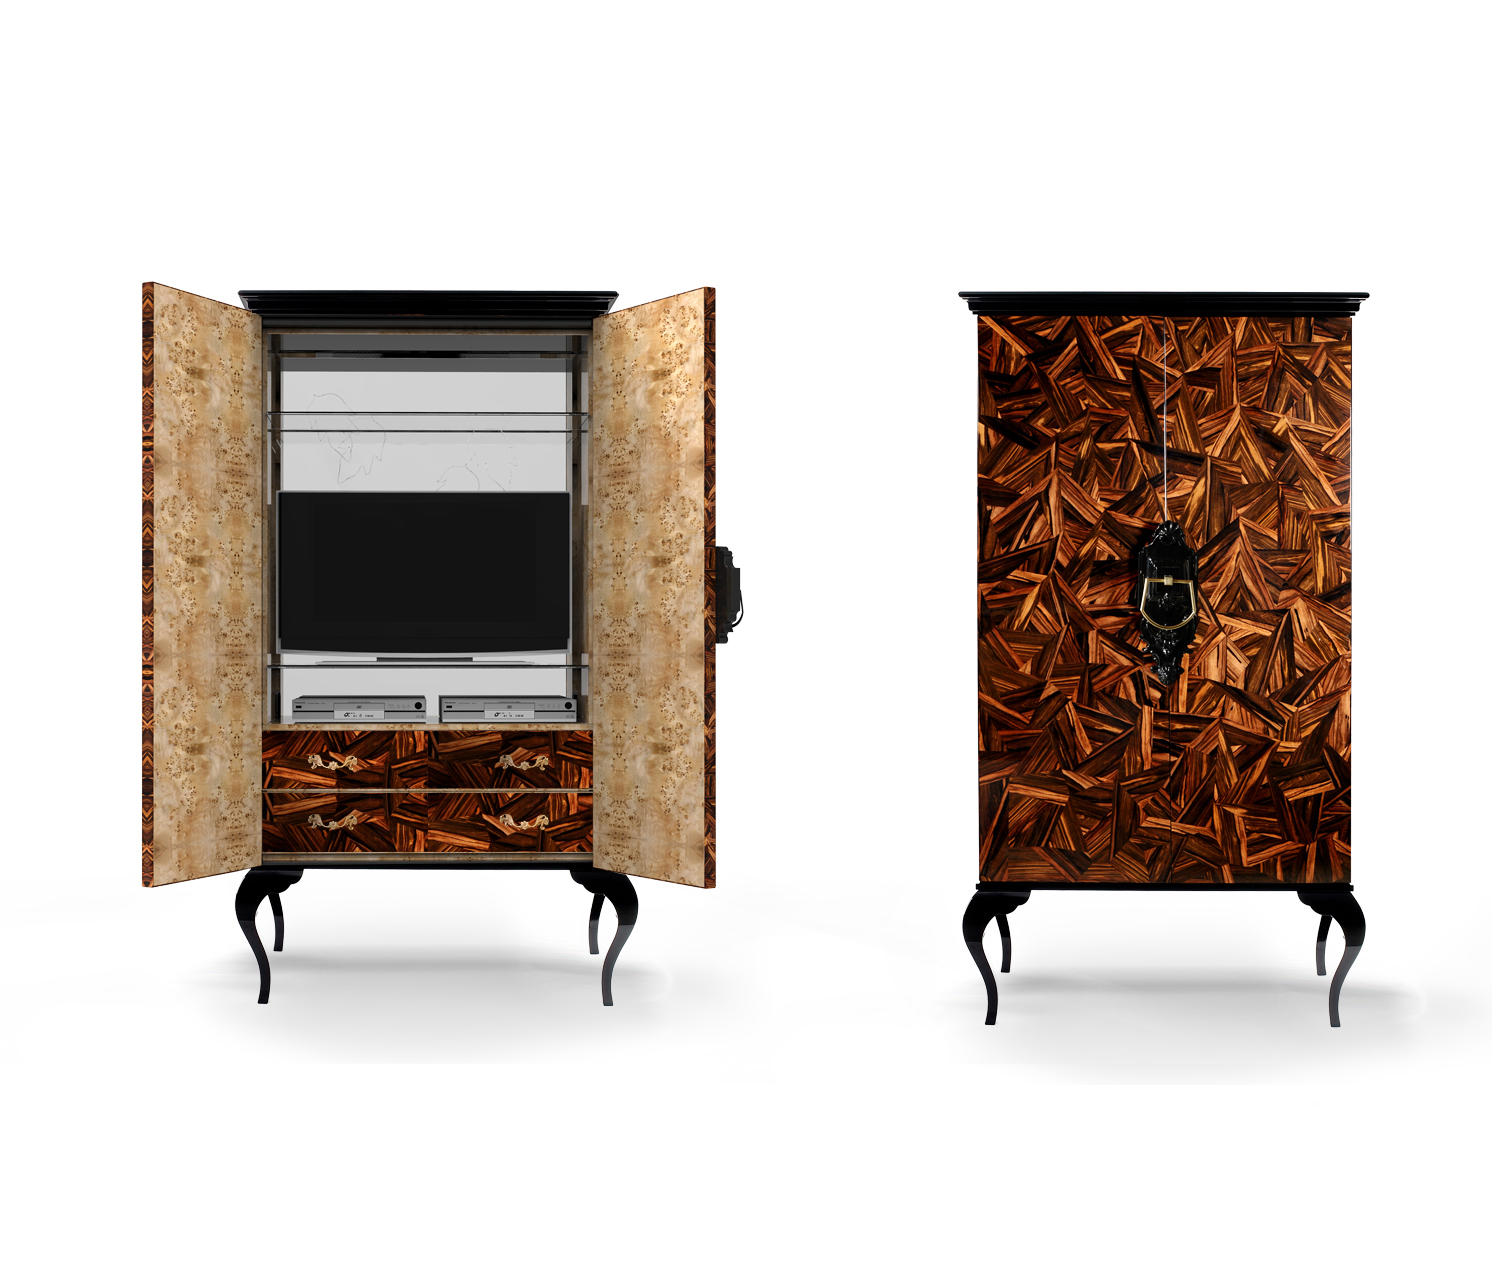 Muebles Boca Do Lobo - Guggenheim Cabinet Cabinets From Boca Do Lobo Architonic[mjhdah]http://iloboyou.com/wp-content/uploads/2013/07/fortuna_03.jpg